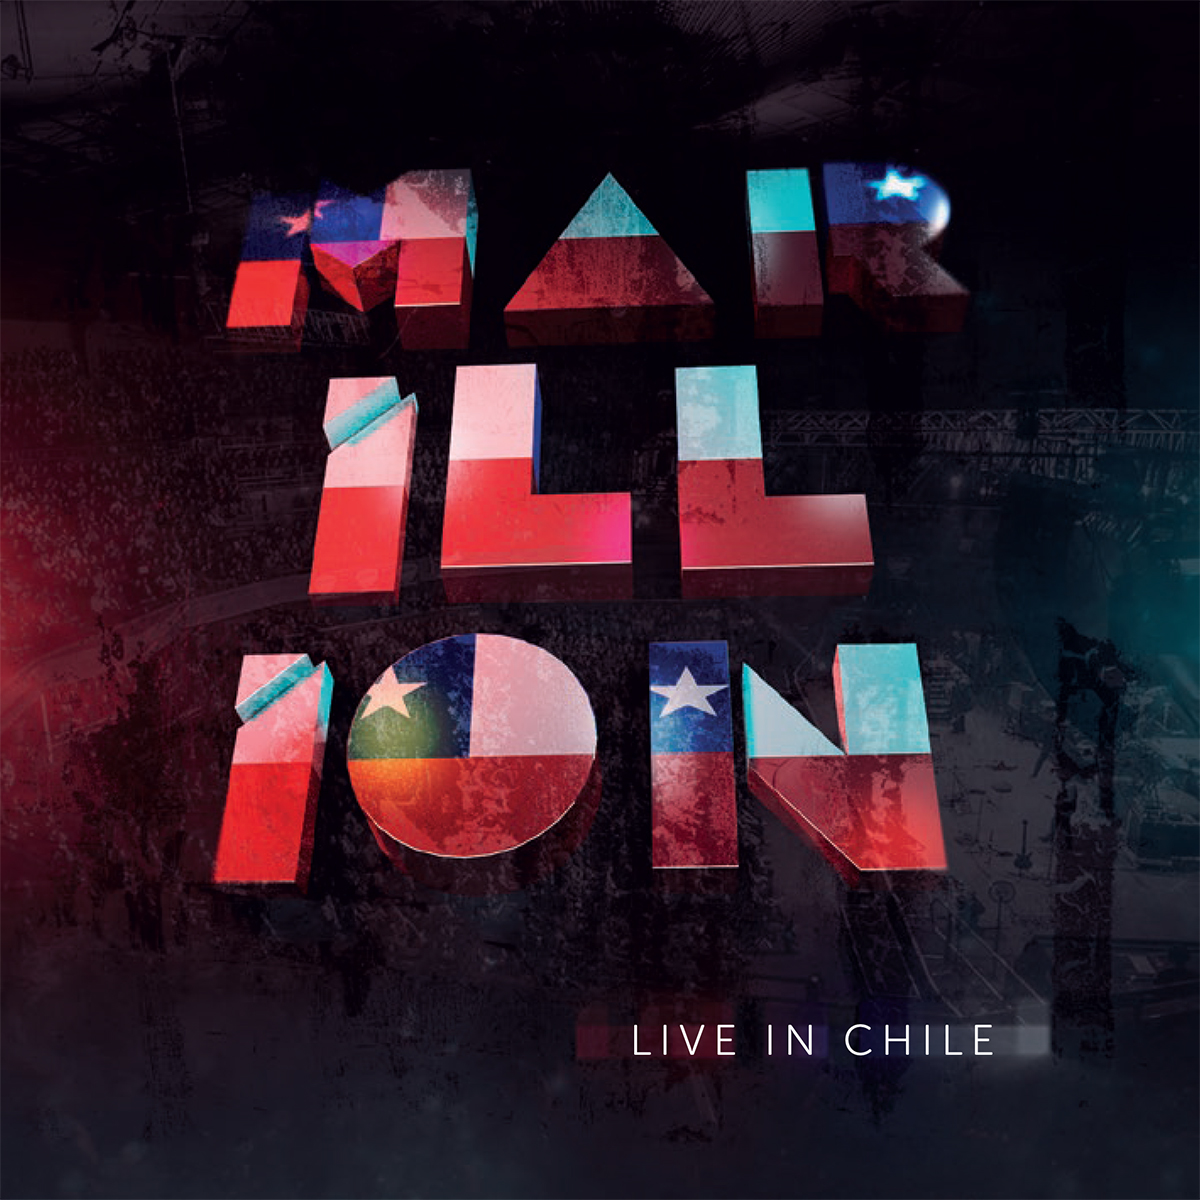 LIVE IN CHILE 2CD LIVE ALBUM